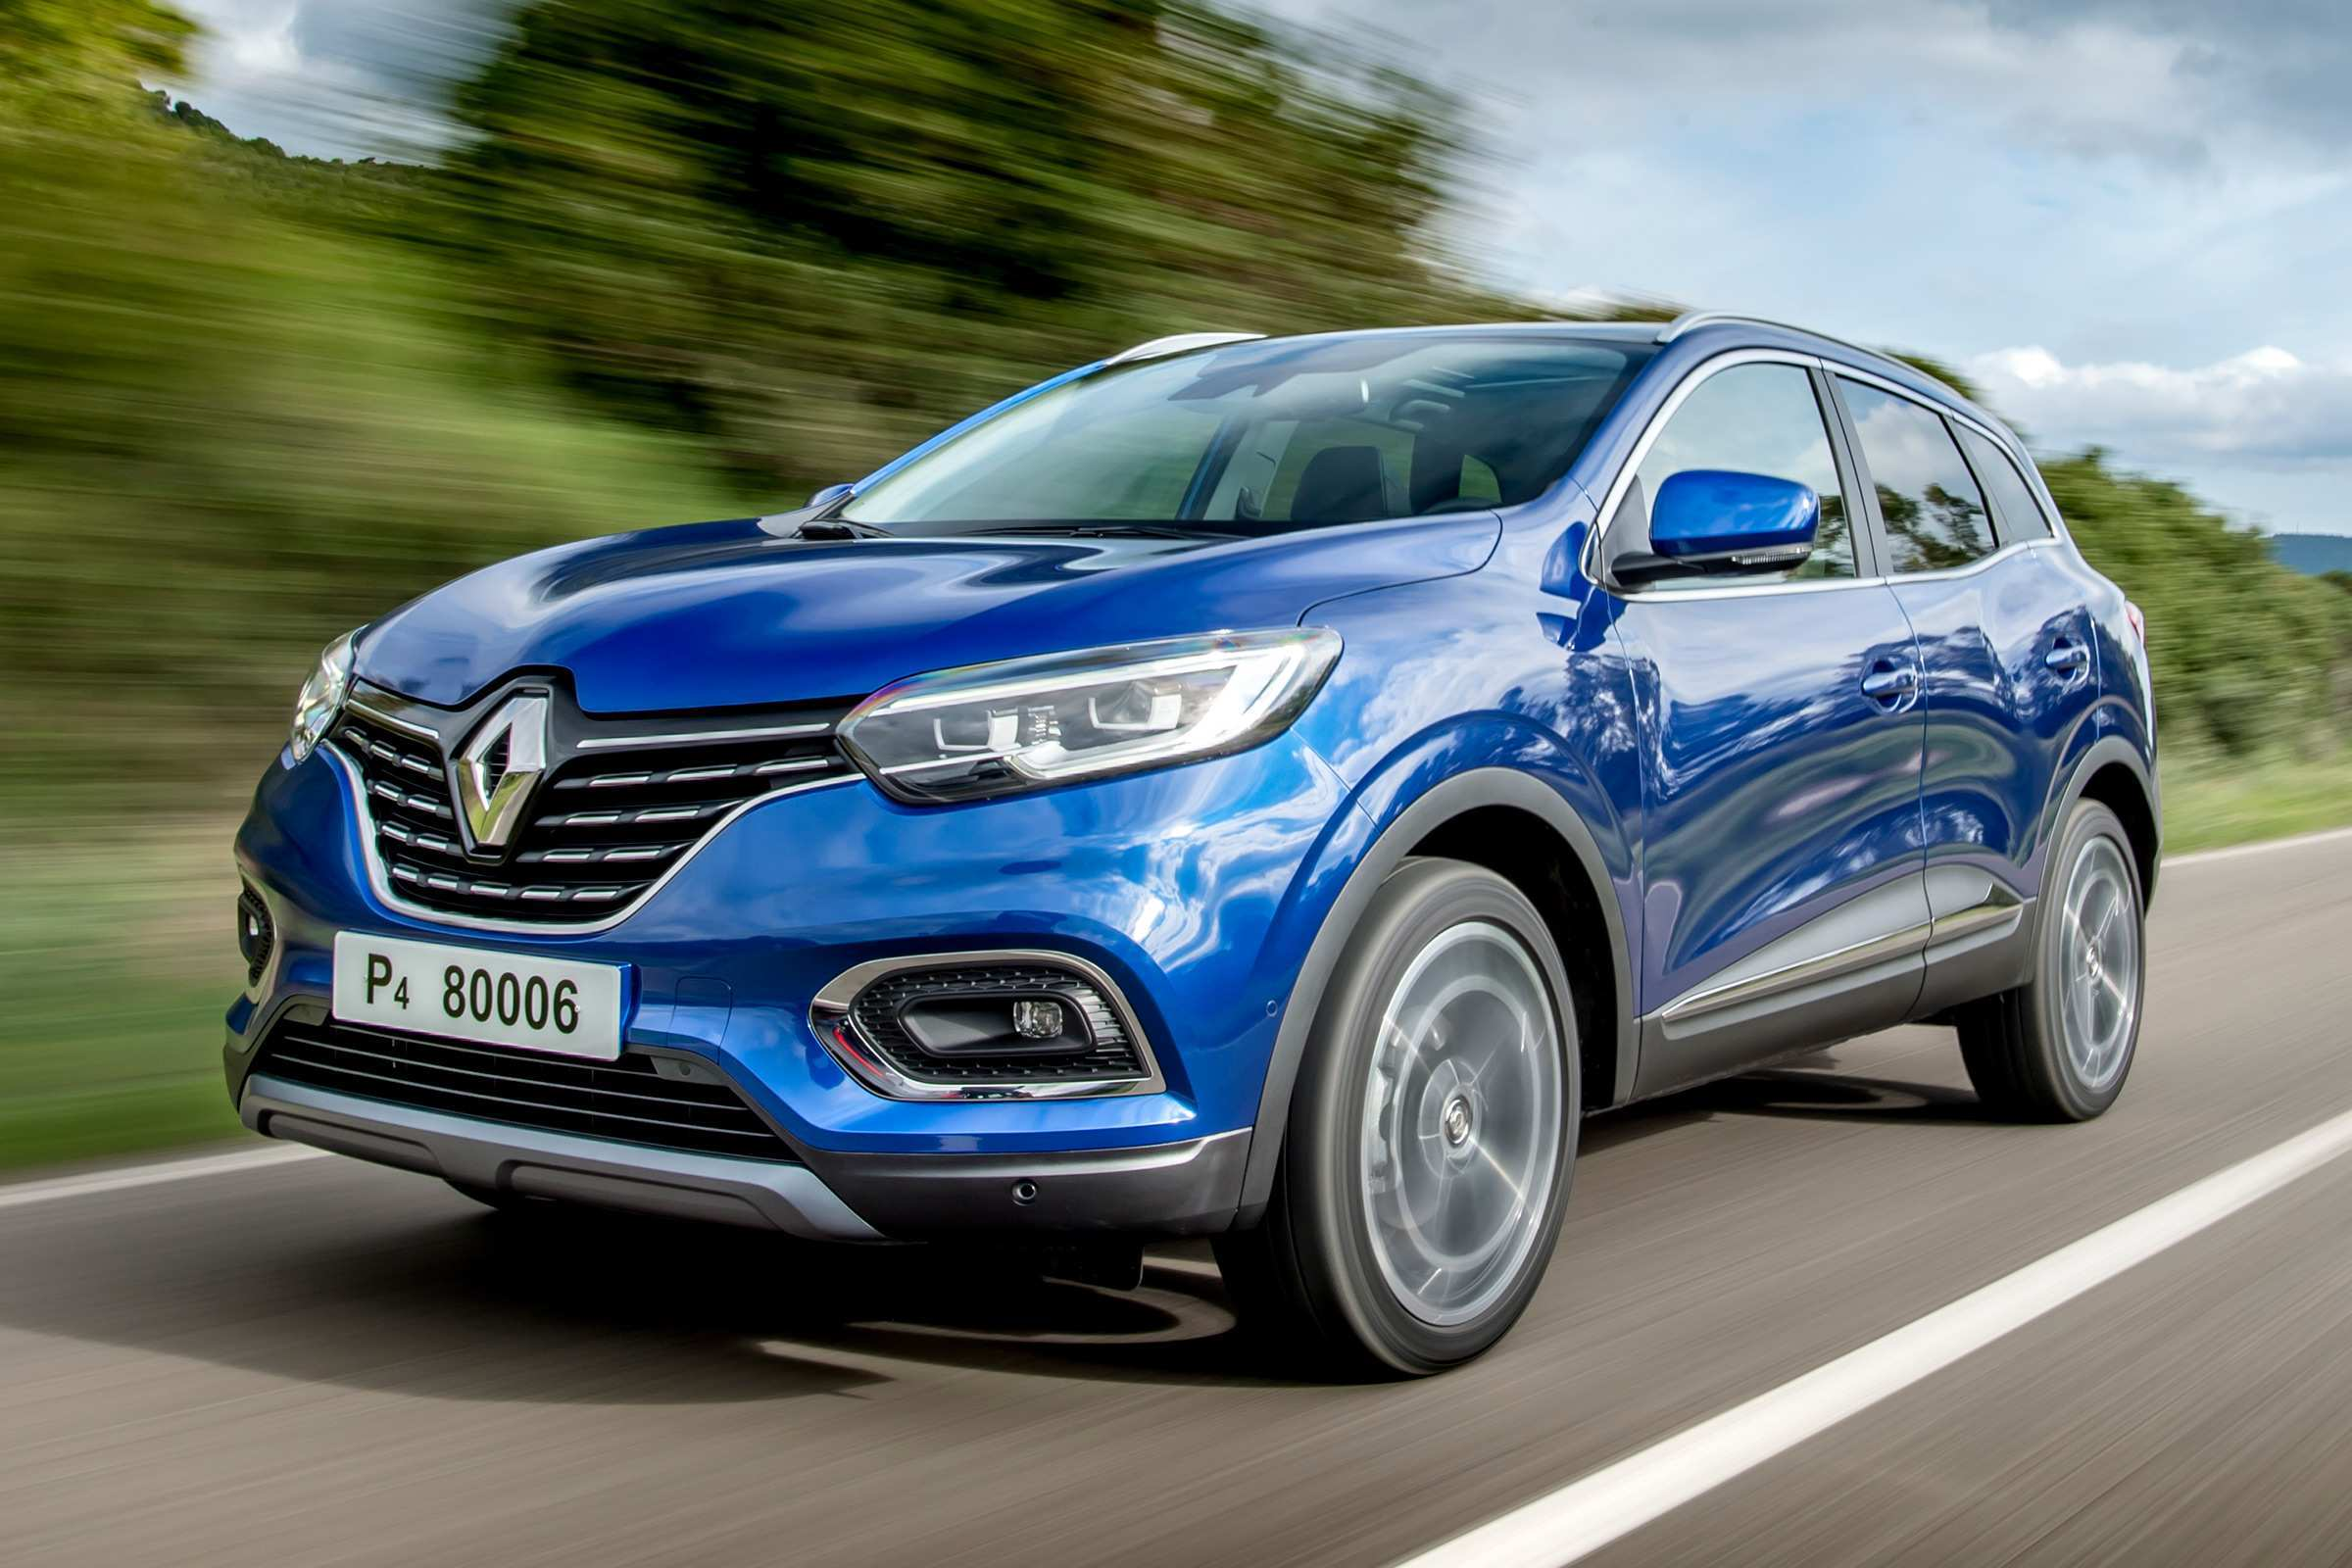 72 All New 2019 Renault Kadjar Review by 2019 Renault Kadjar